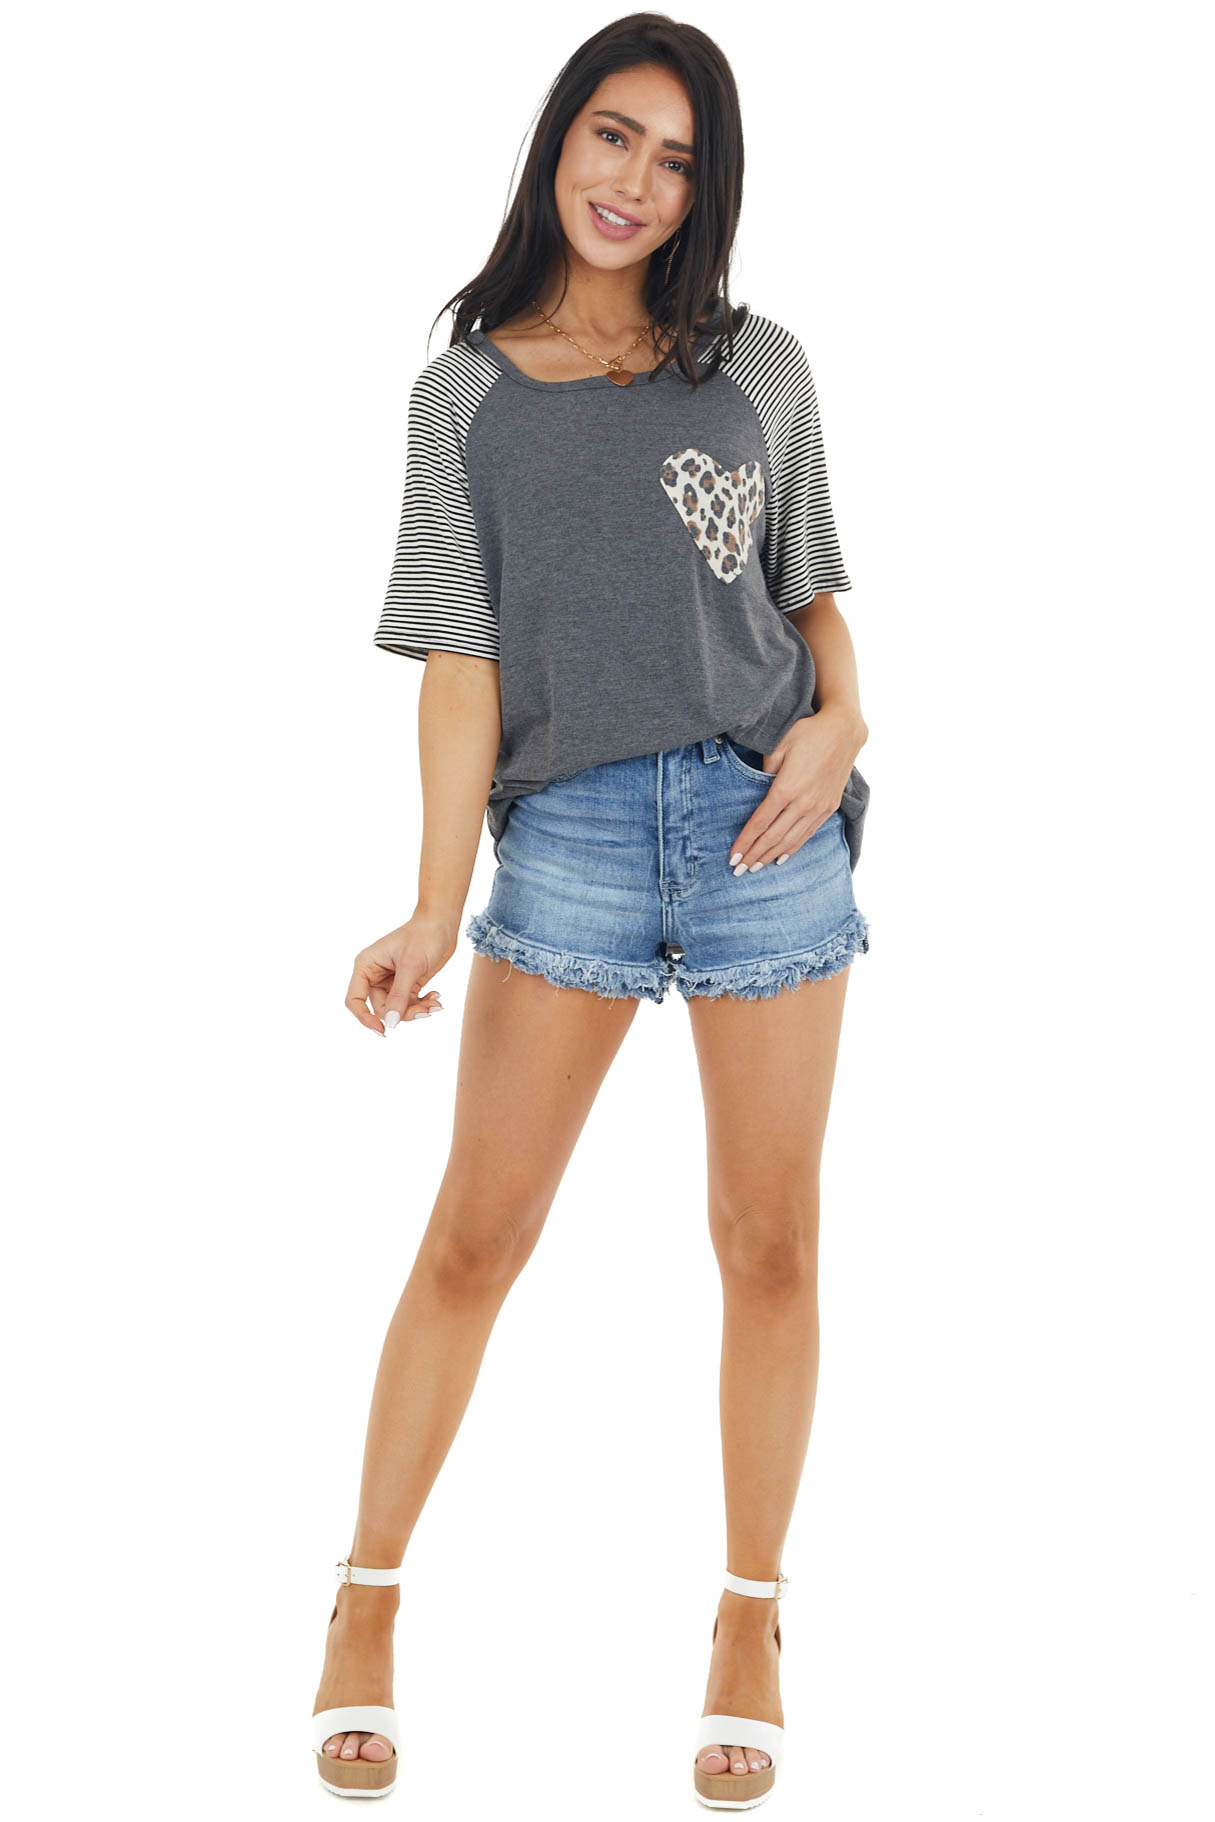 Charcoal Striped Sleeve Knit Tee with Leopard Print Heart